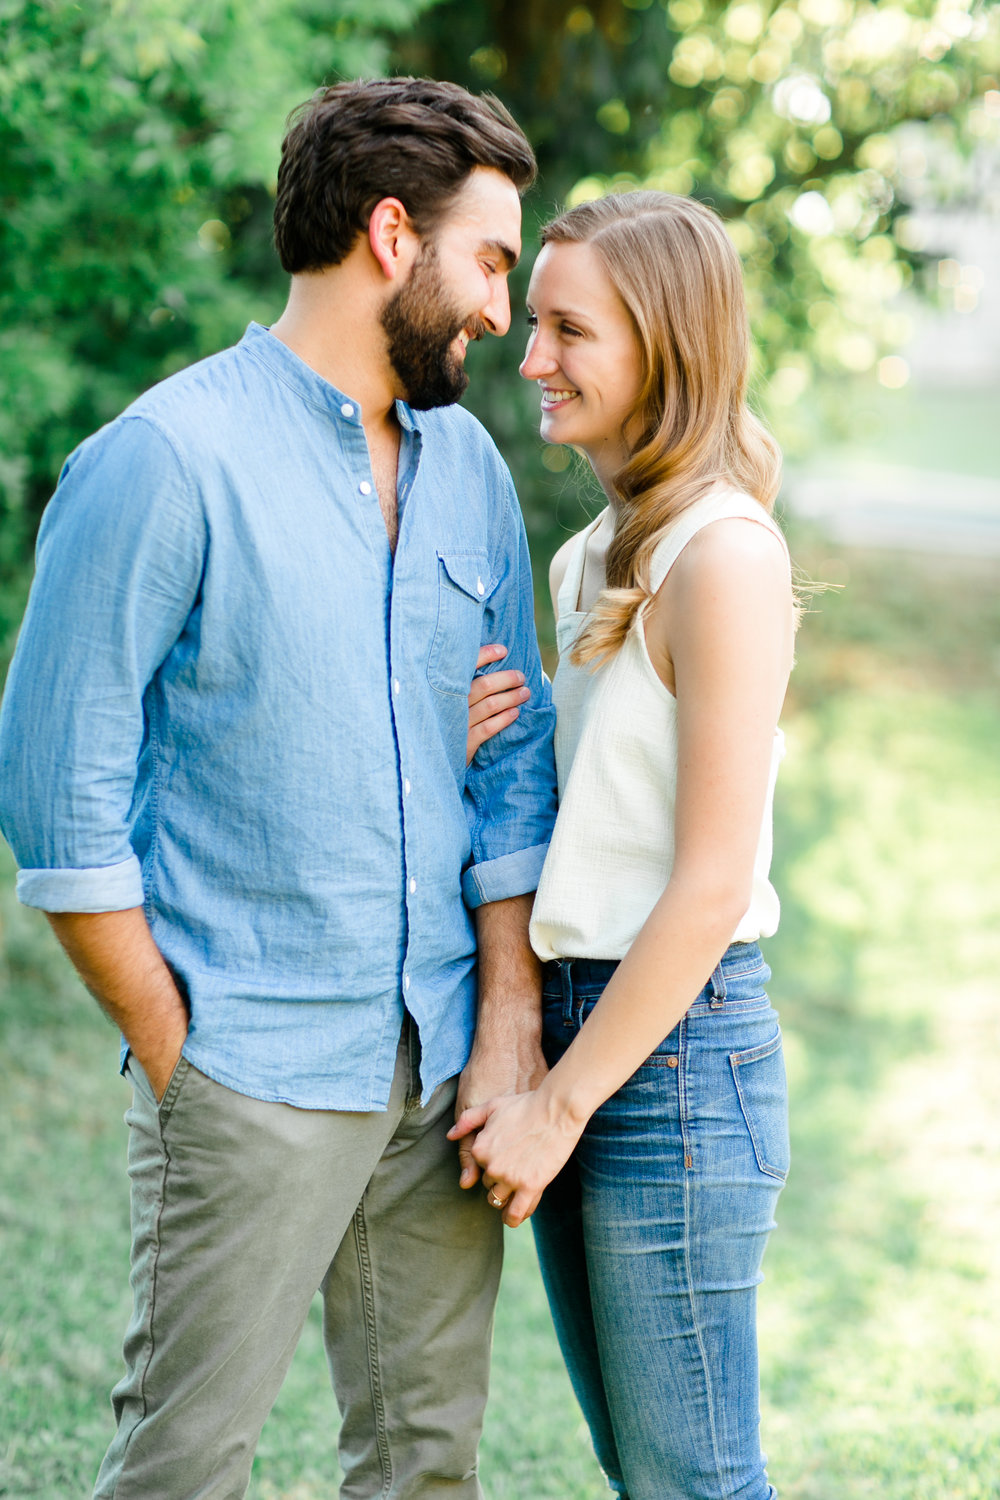 Austin-Texas-Wedding-Photographers-home-lifestyle-engagement-session-36.jpg